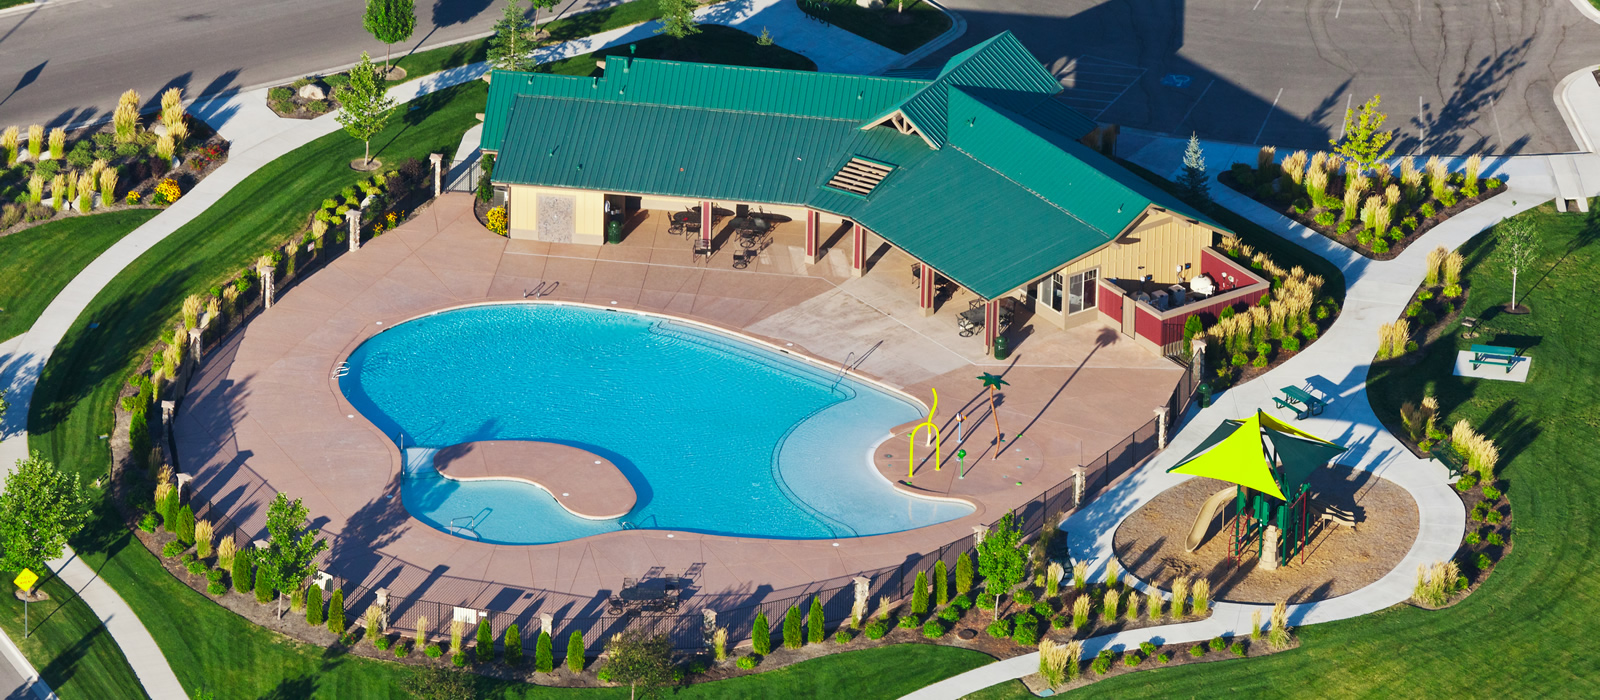 West Highlands Community Pool